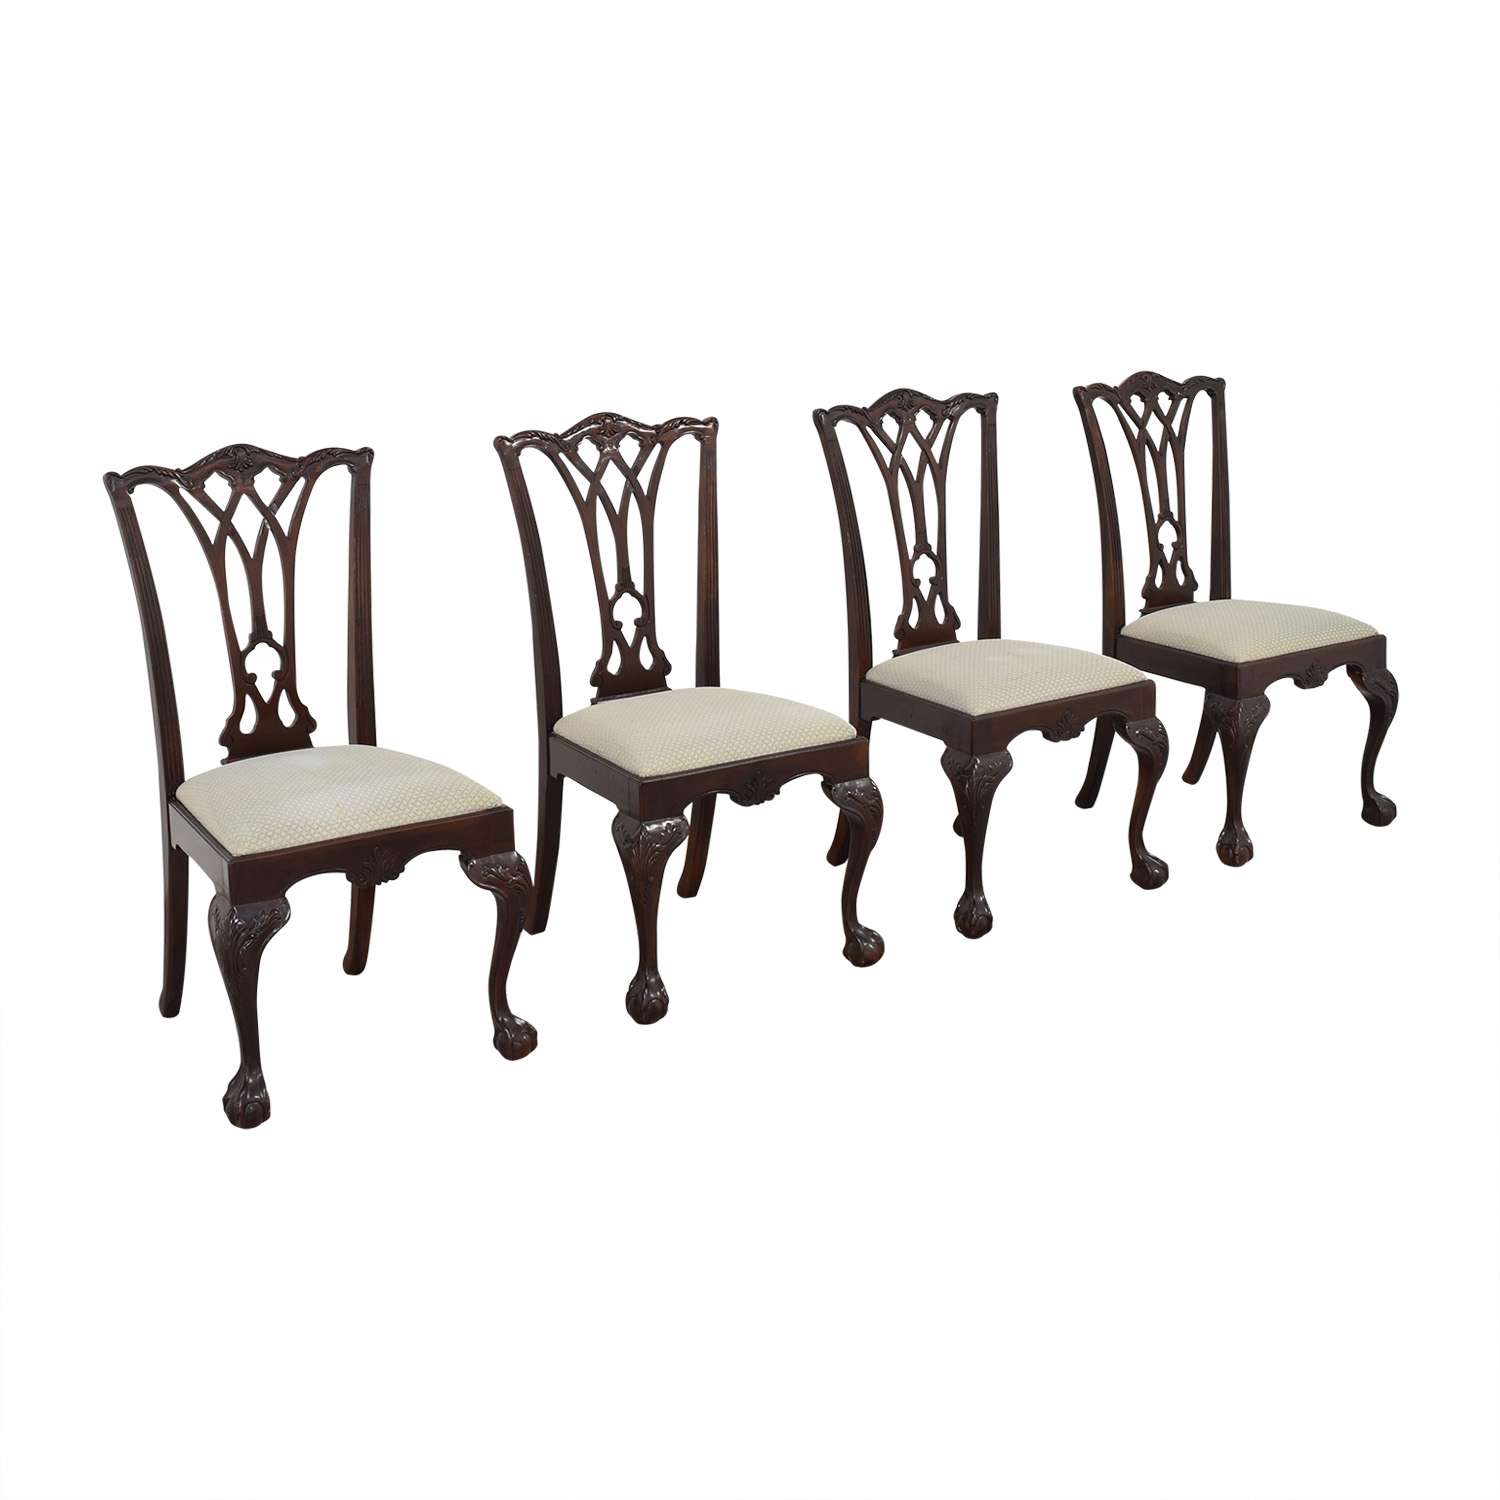 Drexel Heritage Drexel Heritage Armless Dining Chairs used